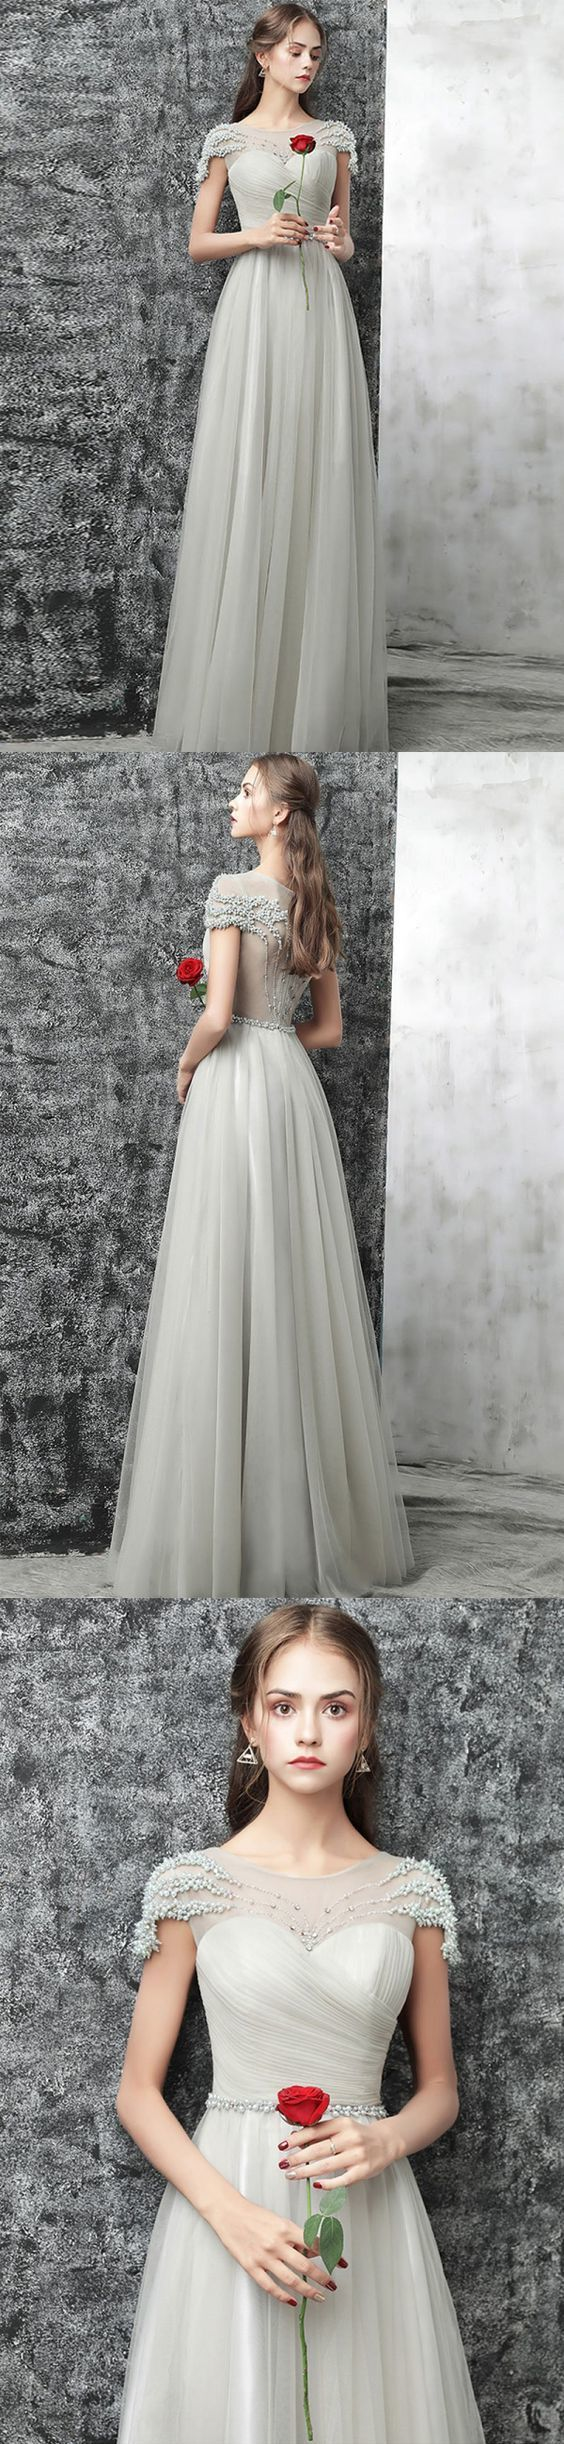 Cheap Prom Dress A-line Simple Floor-length Beading Long Prom Dress/Evening